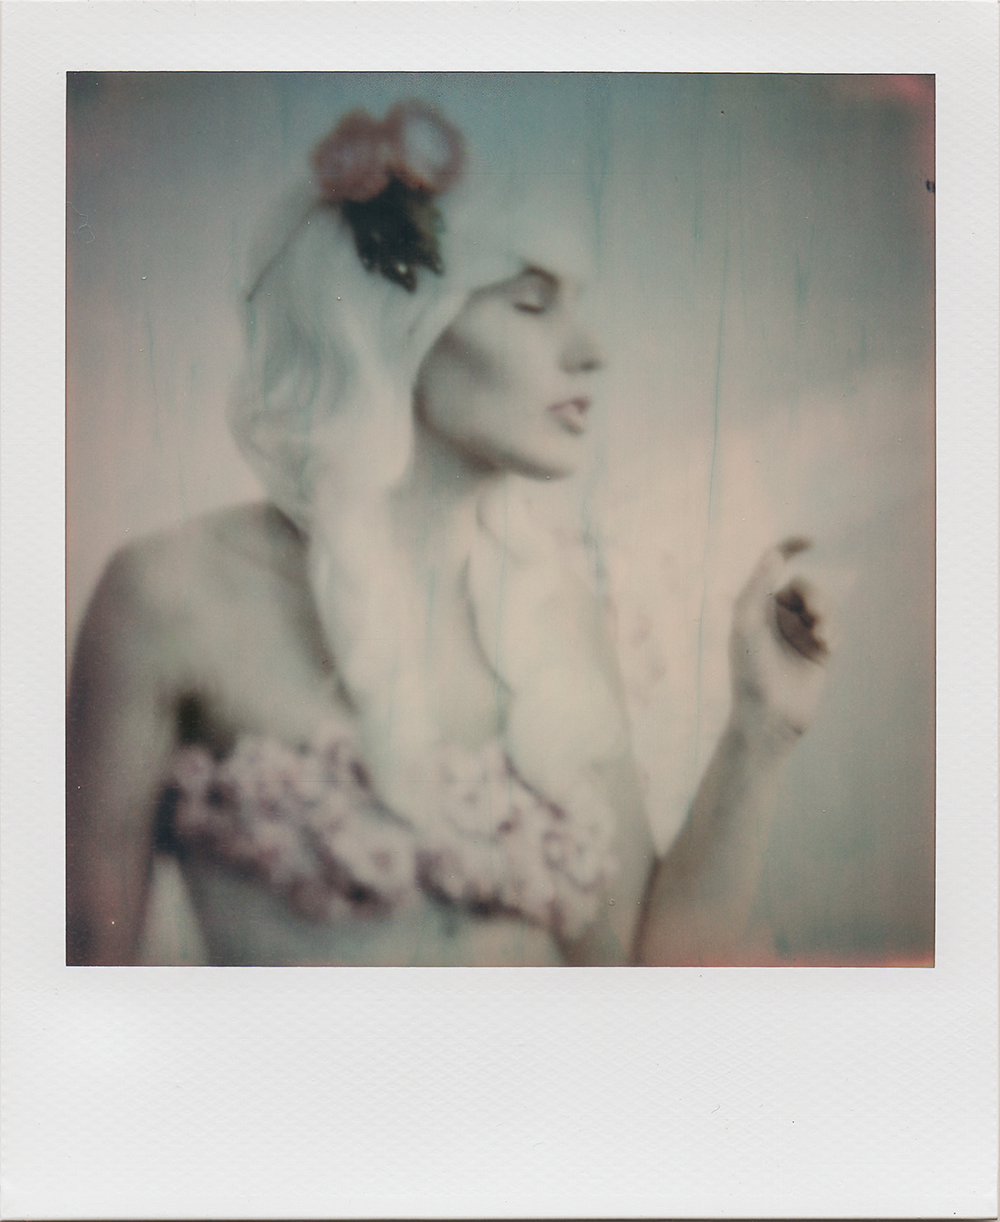 Instant Dreams | Polaroid SLR680 | Polaroid Originals 600 Color Film | Karin Claus